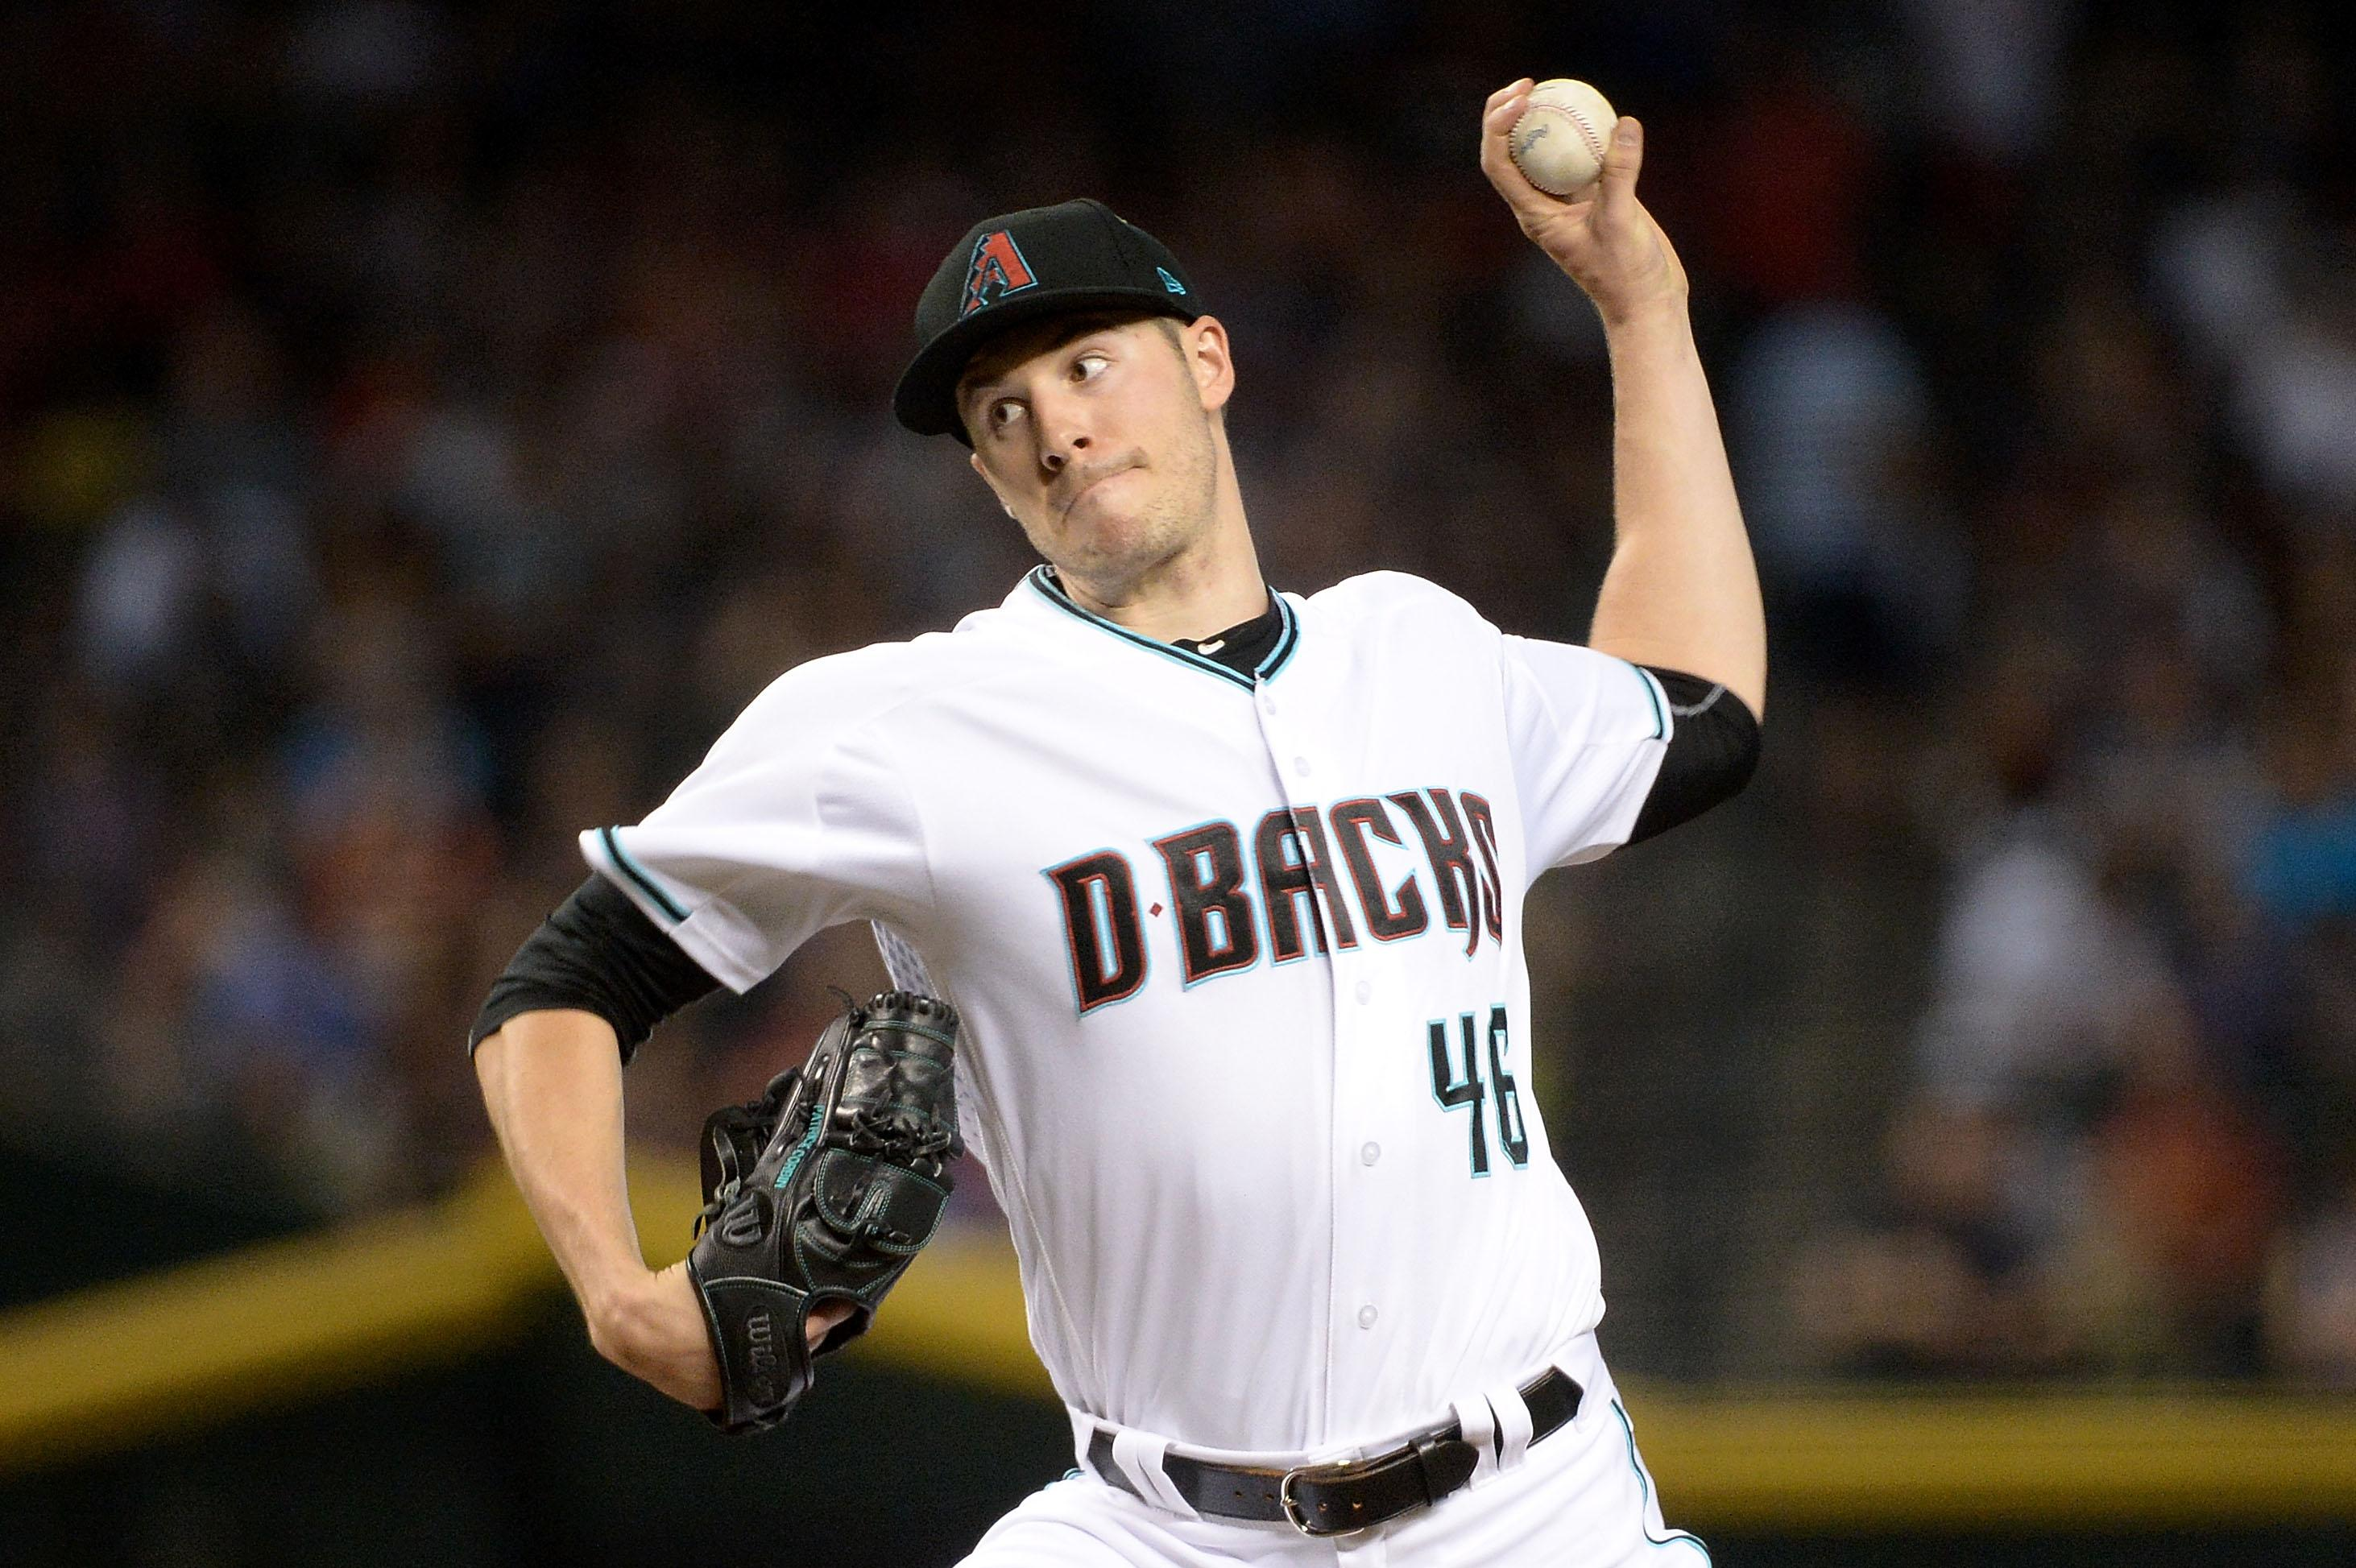 Washington Nationals reportedly agree six-year deal with Patrick Corbin